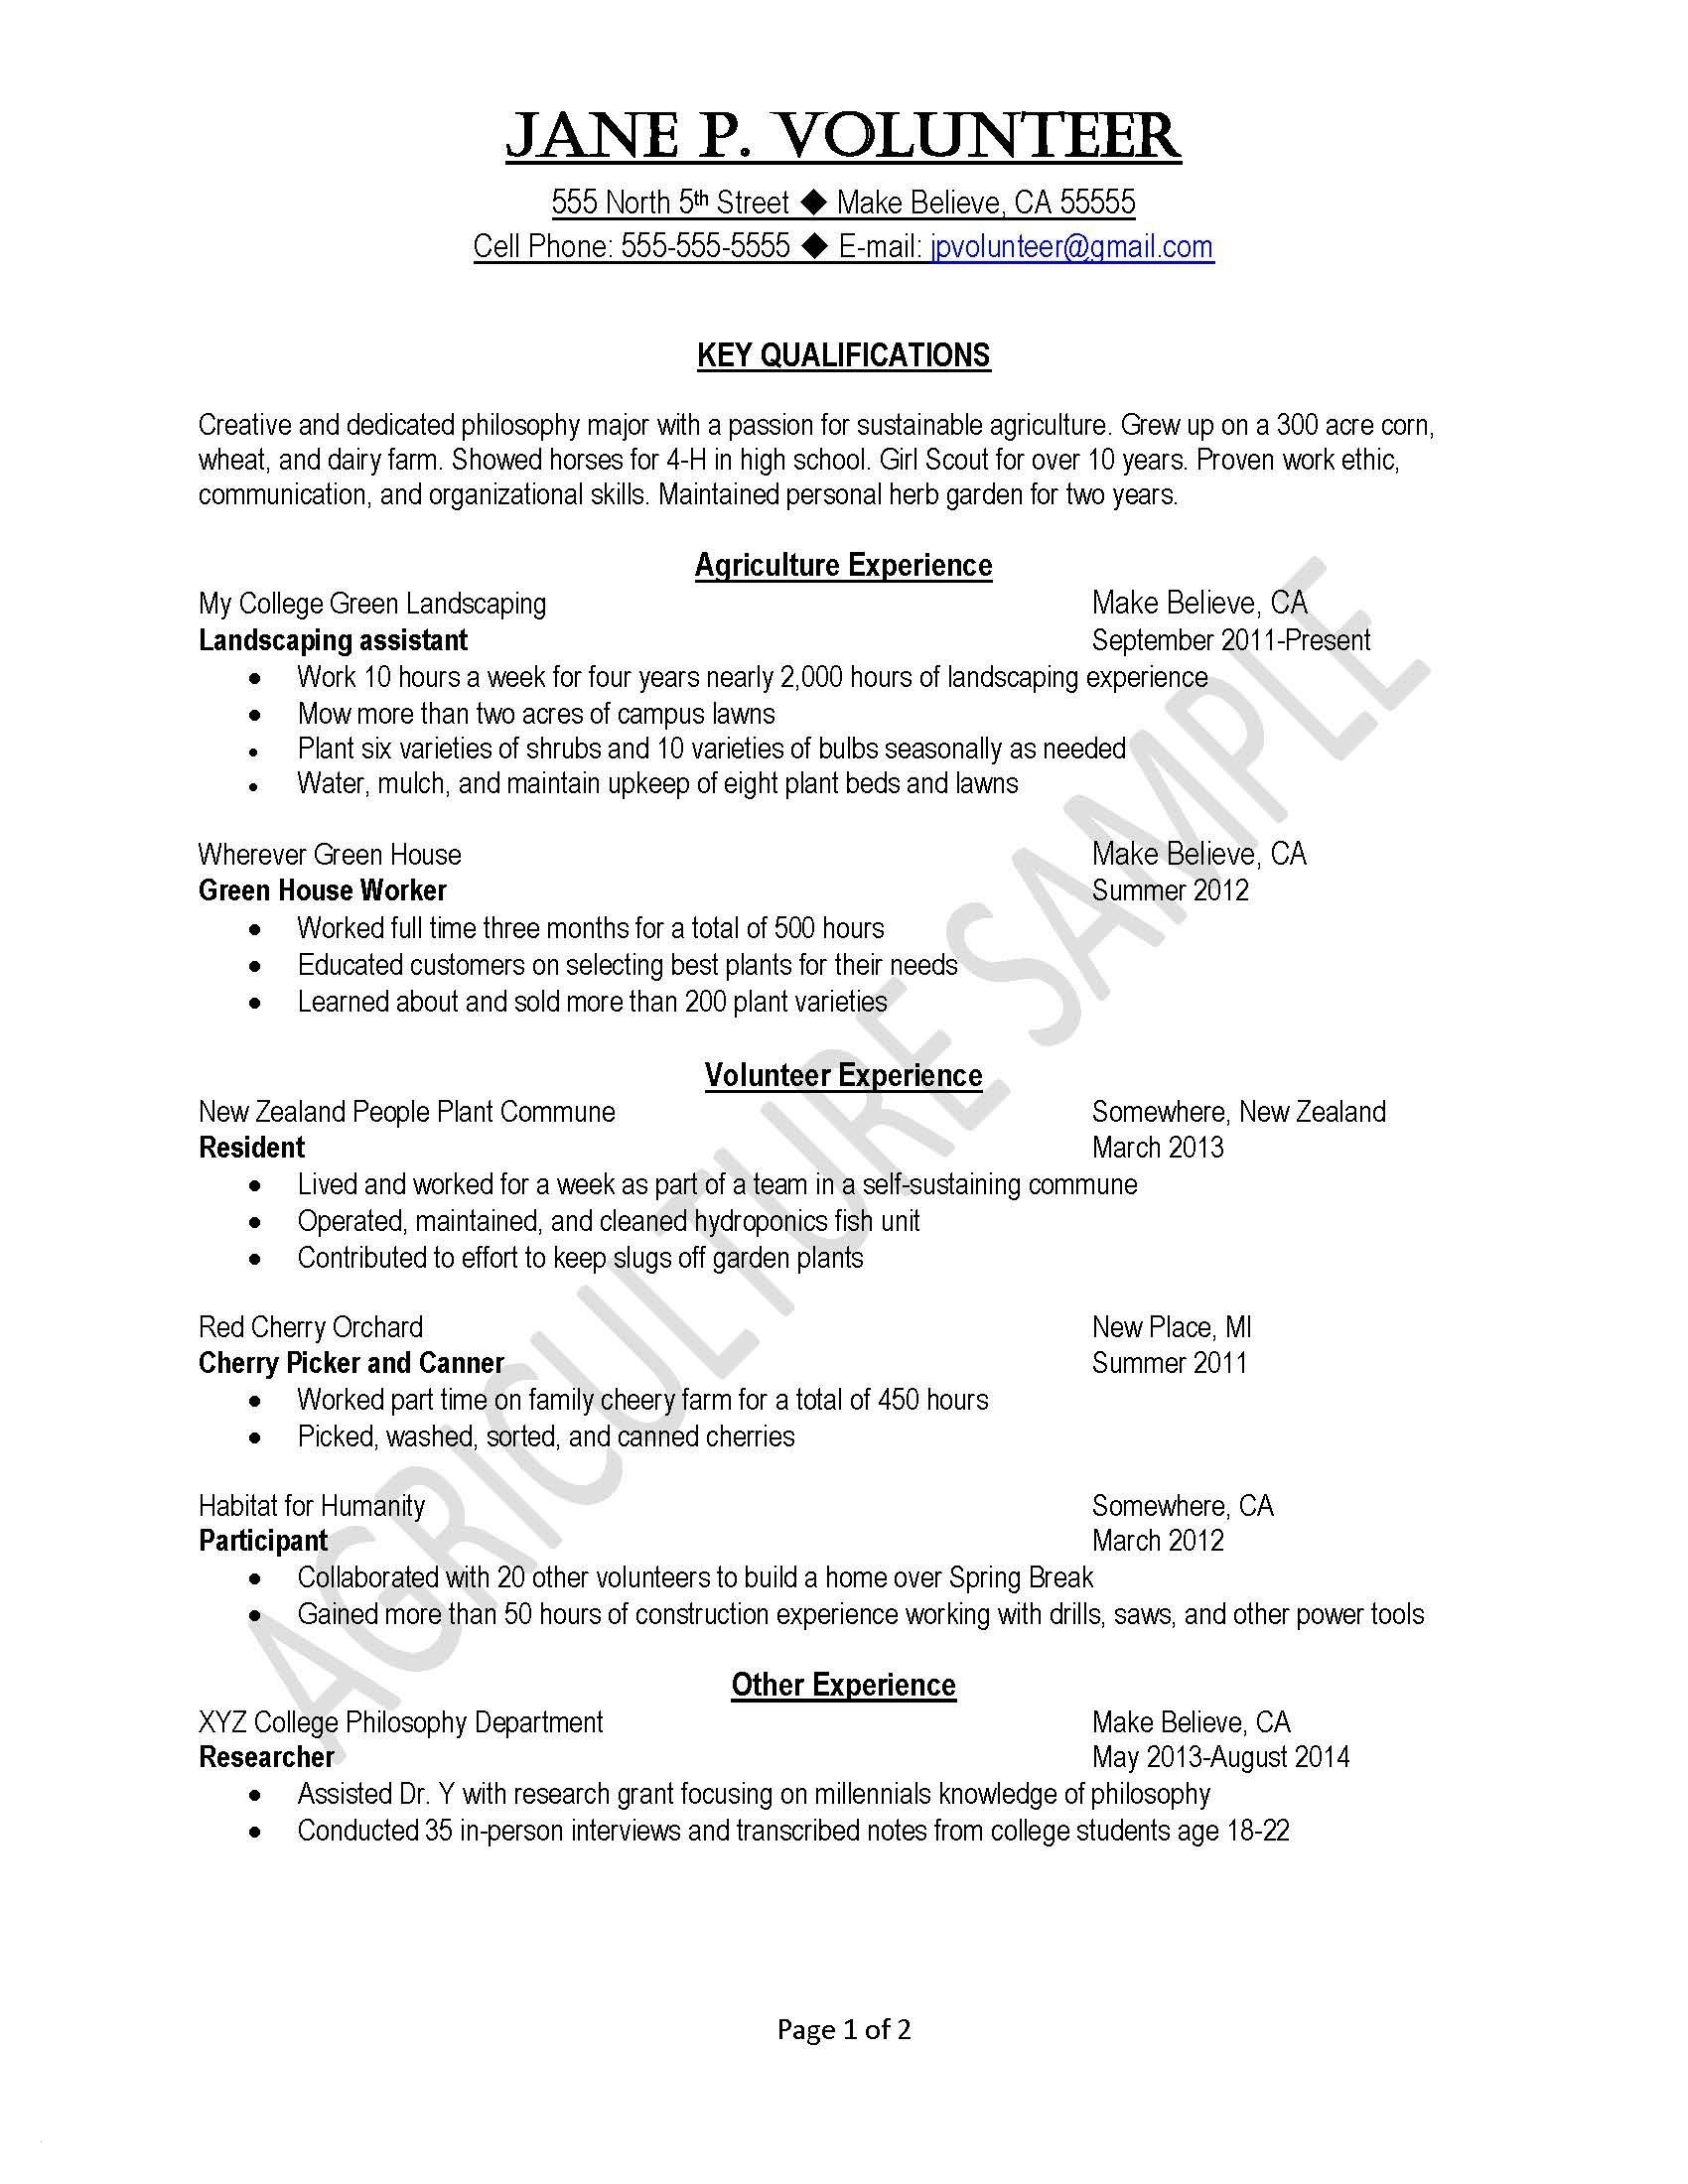 College Graduate Resume - Resume Templates for College Applications Awesome Awesome Sample